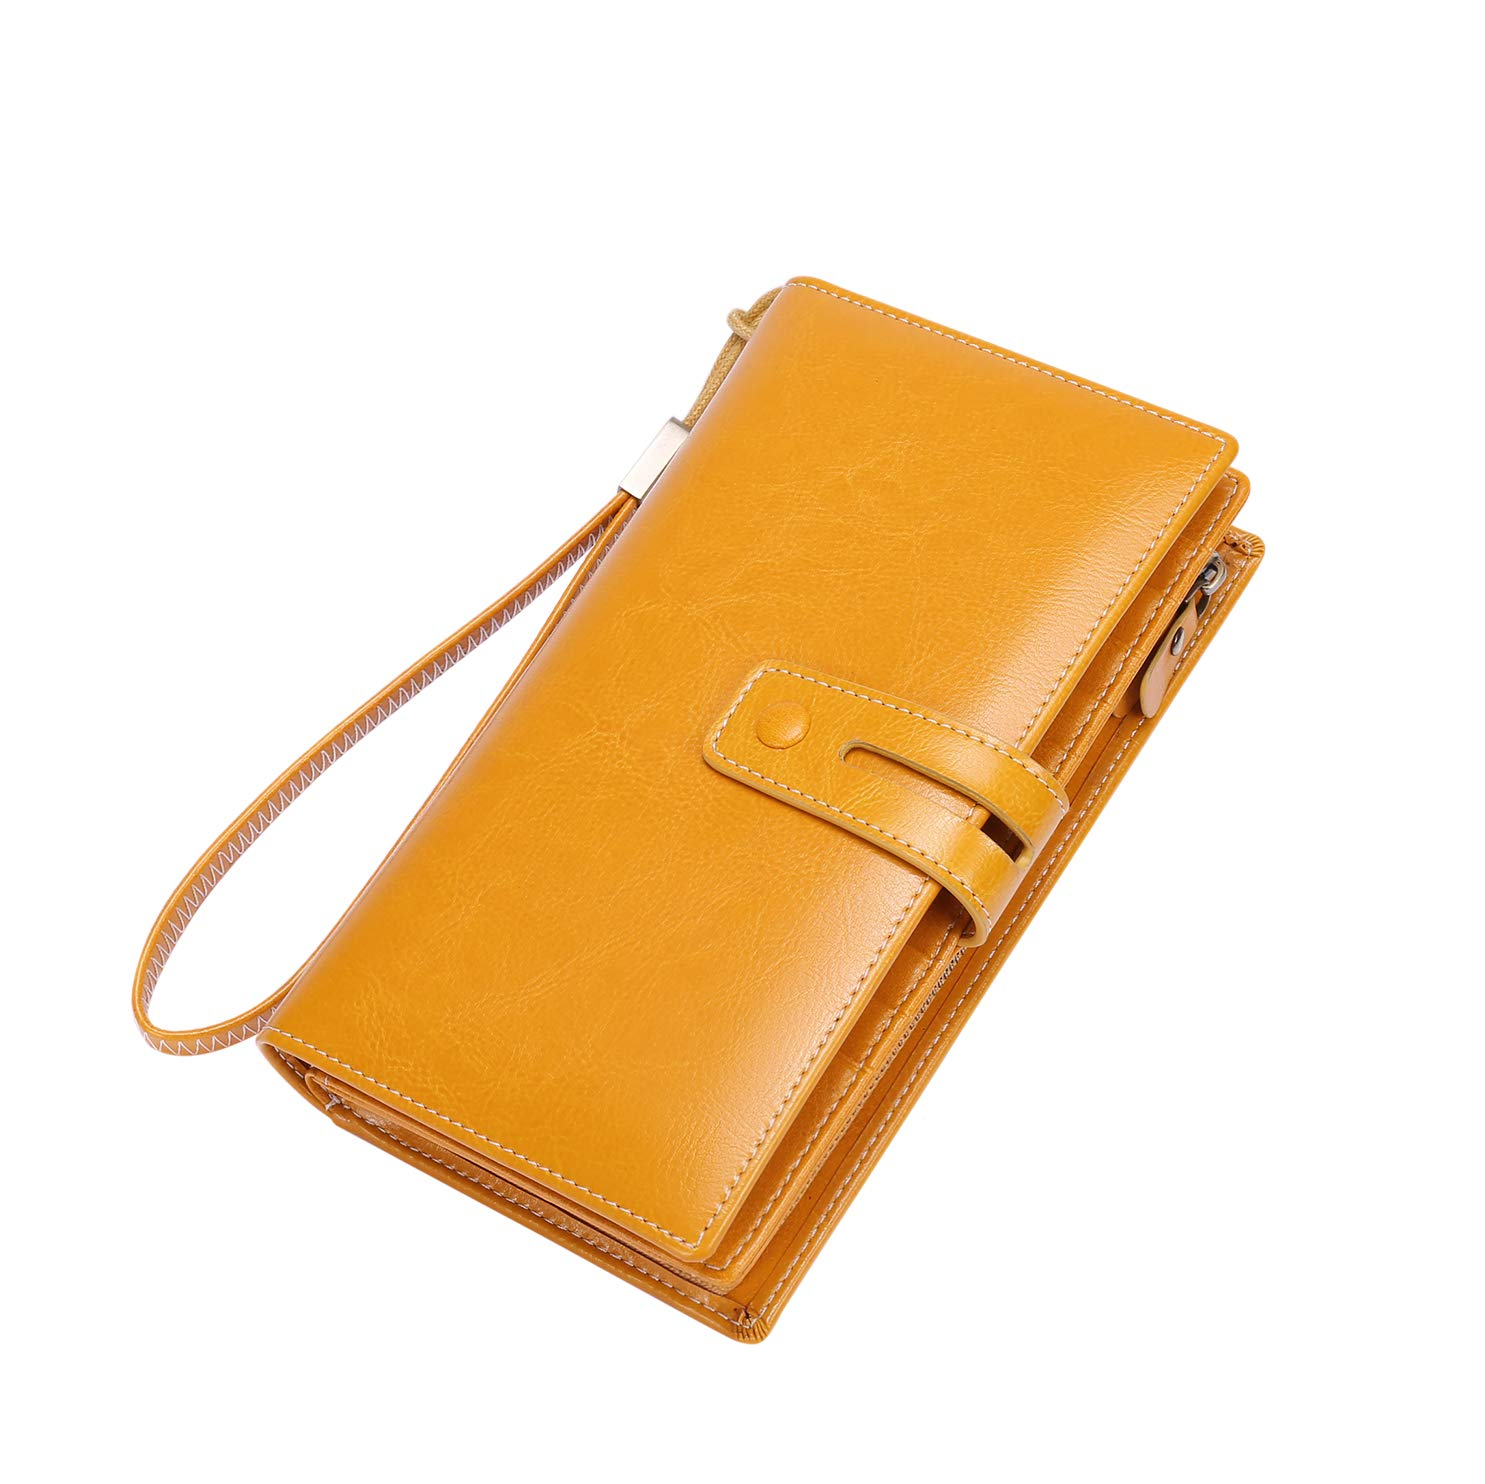 Wallet for Women Large Capacity RFID Blocking Real Leather Purse Clutch Checkbook (Z1 Checkbook Yellow)